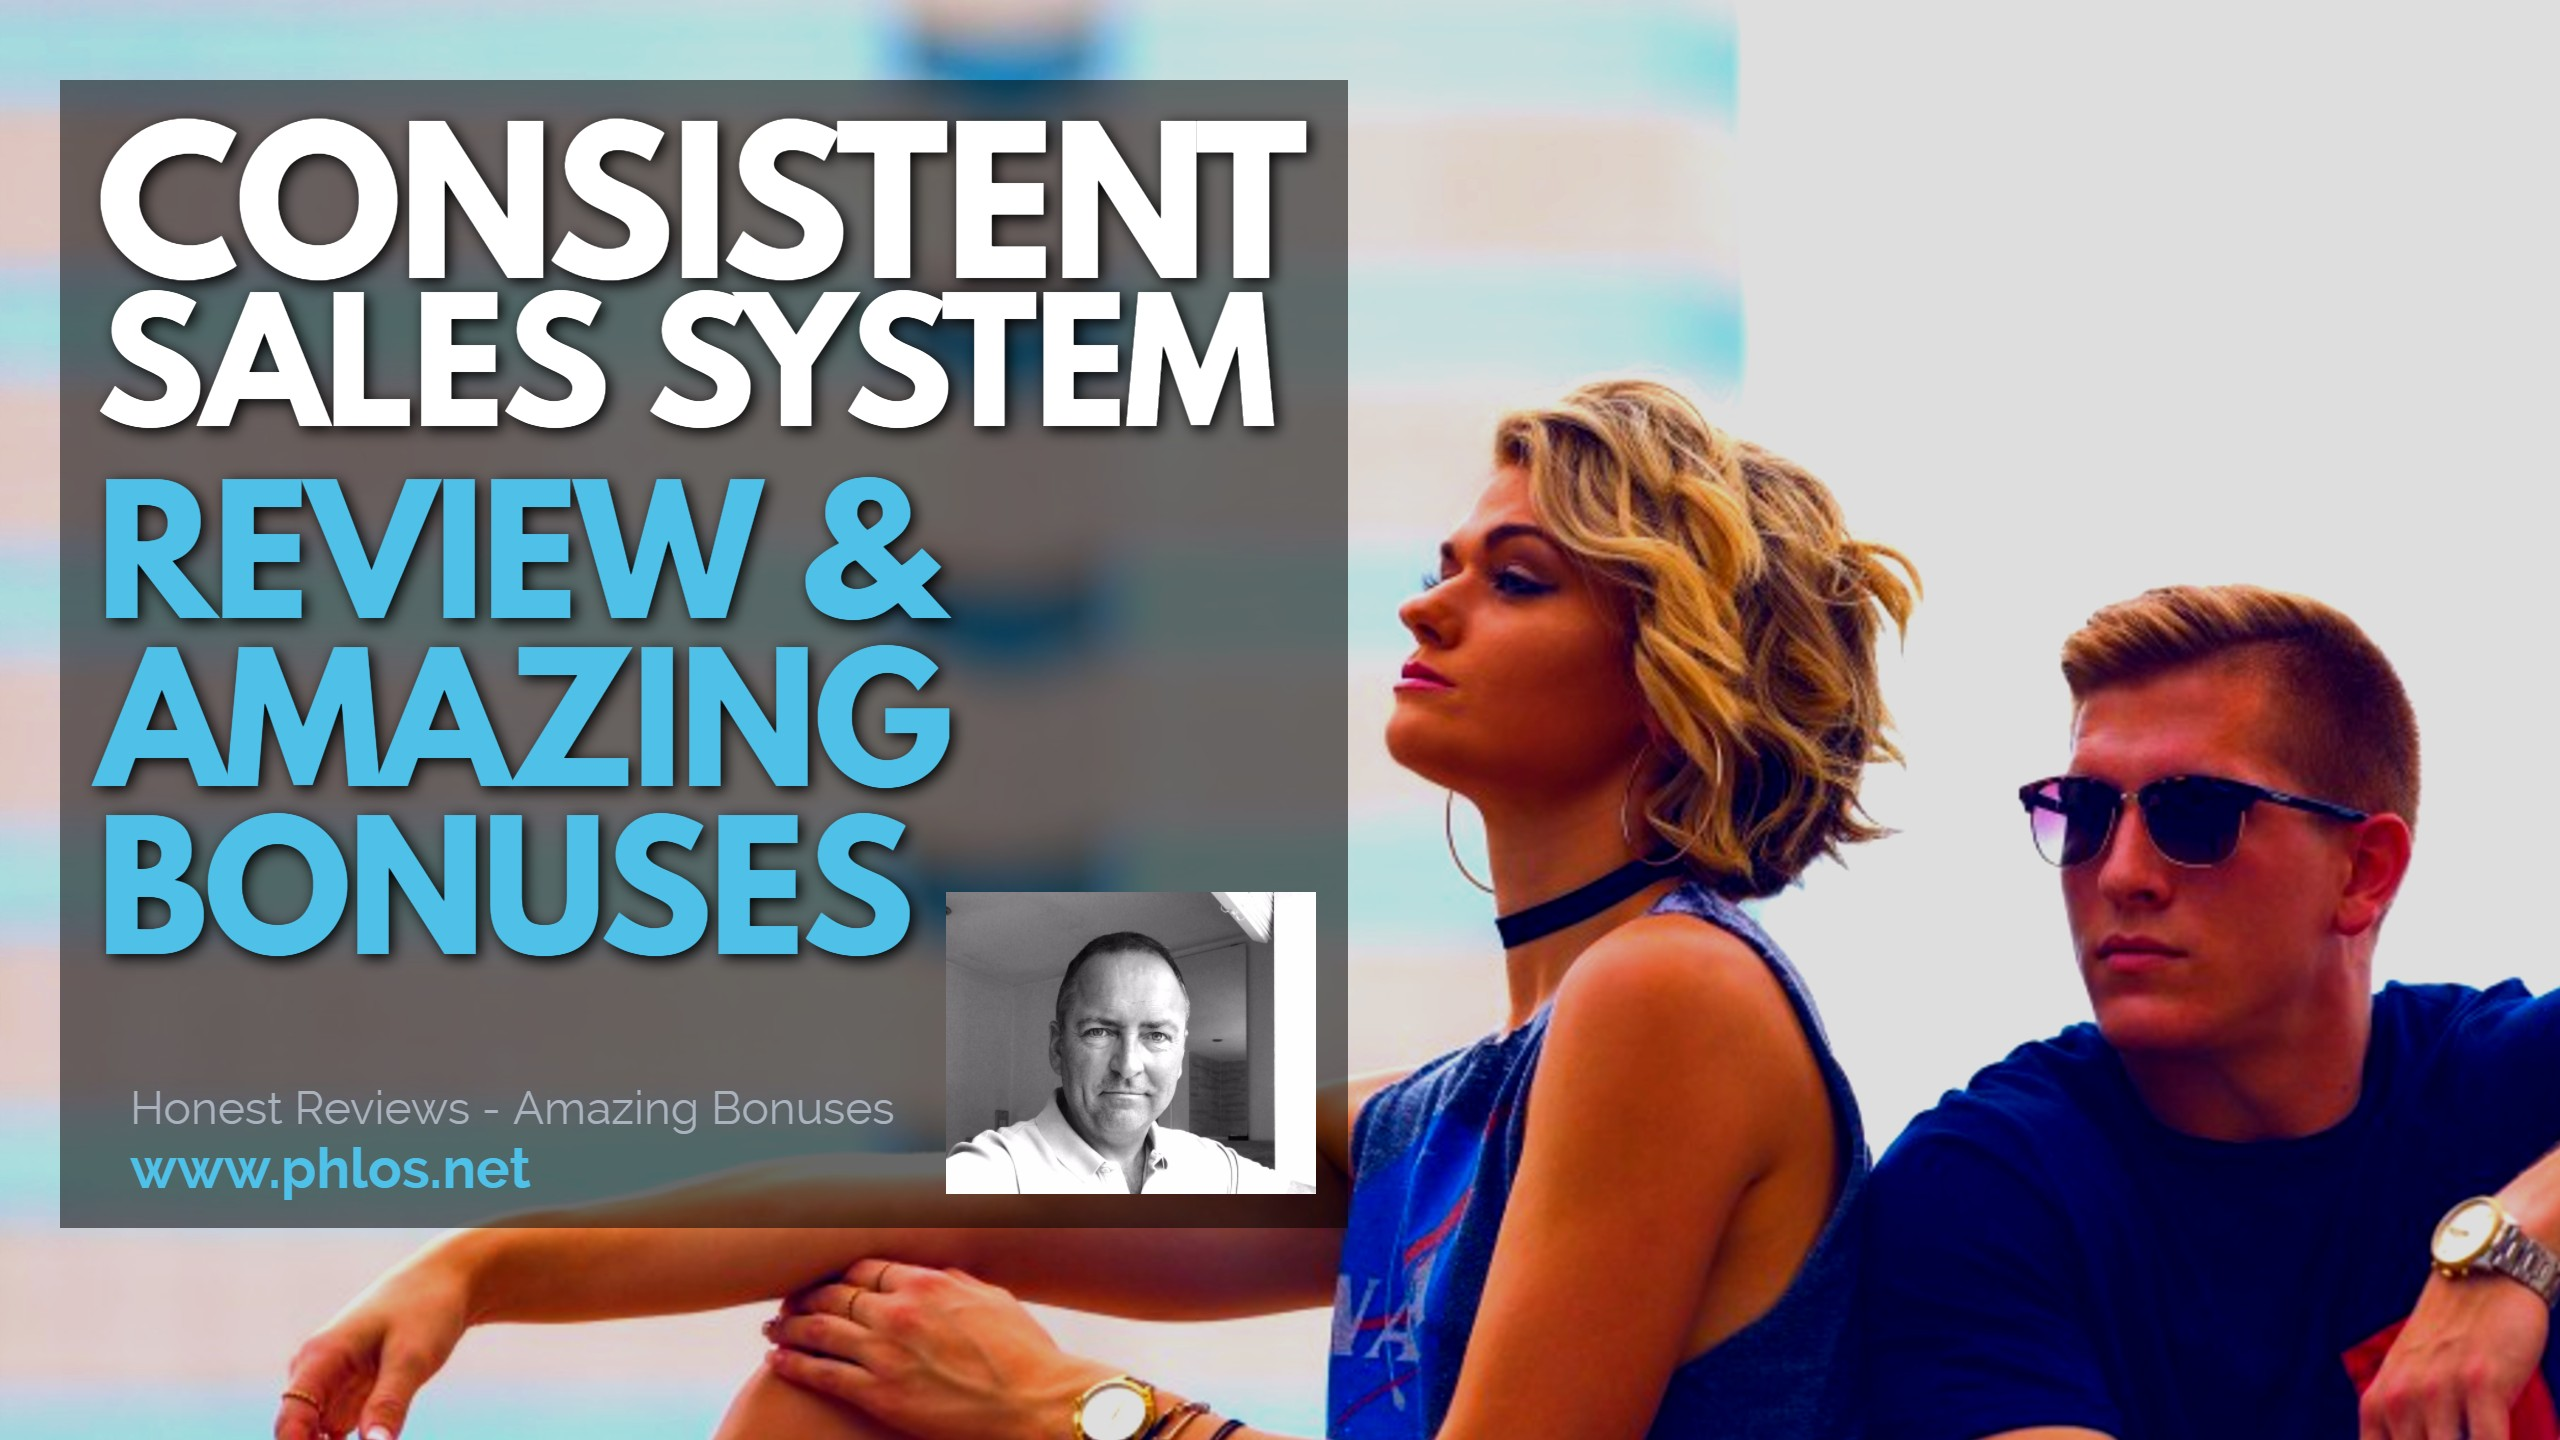 Consistent Sales System Review and Bonuses